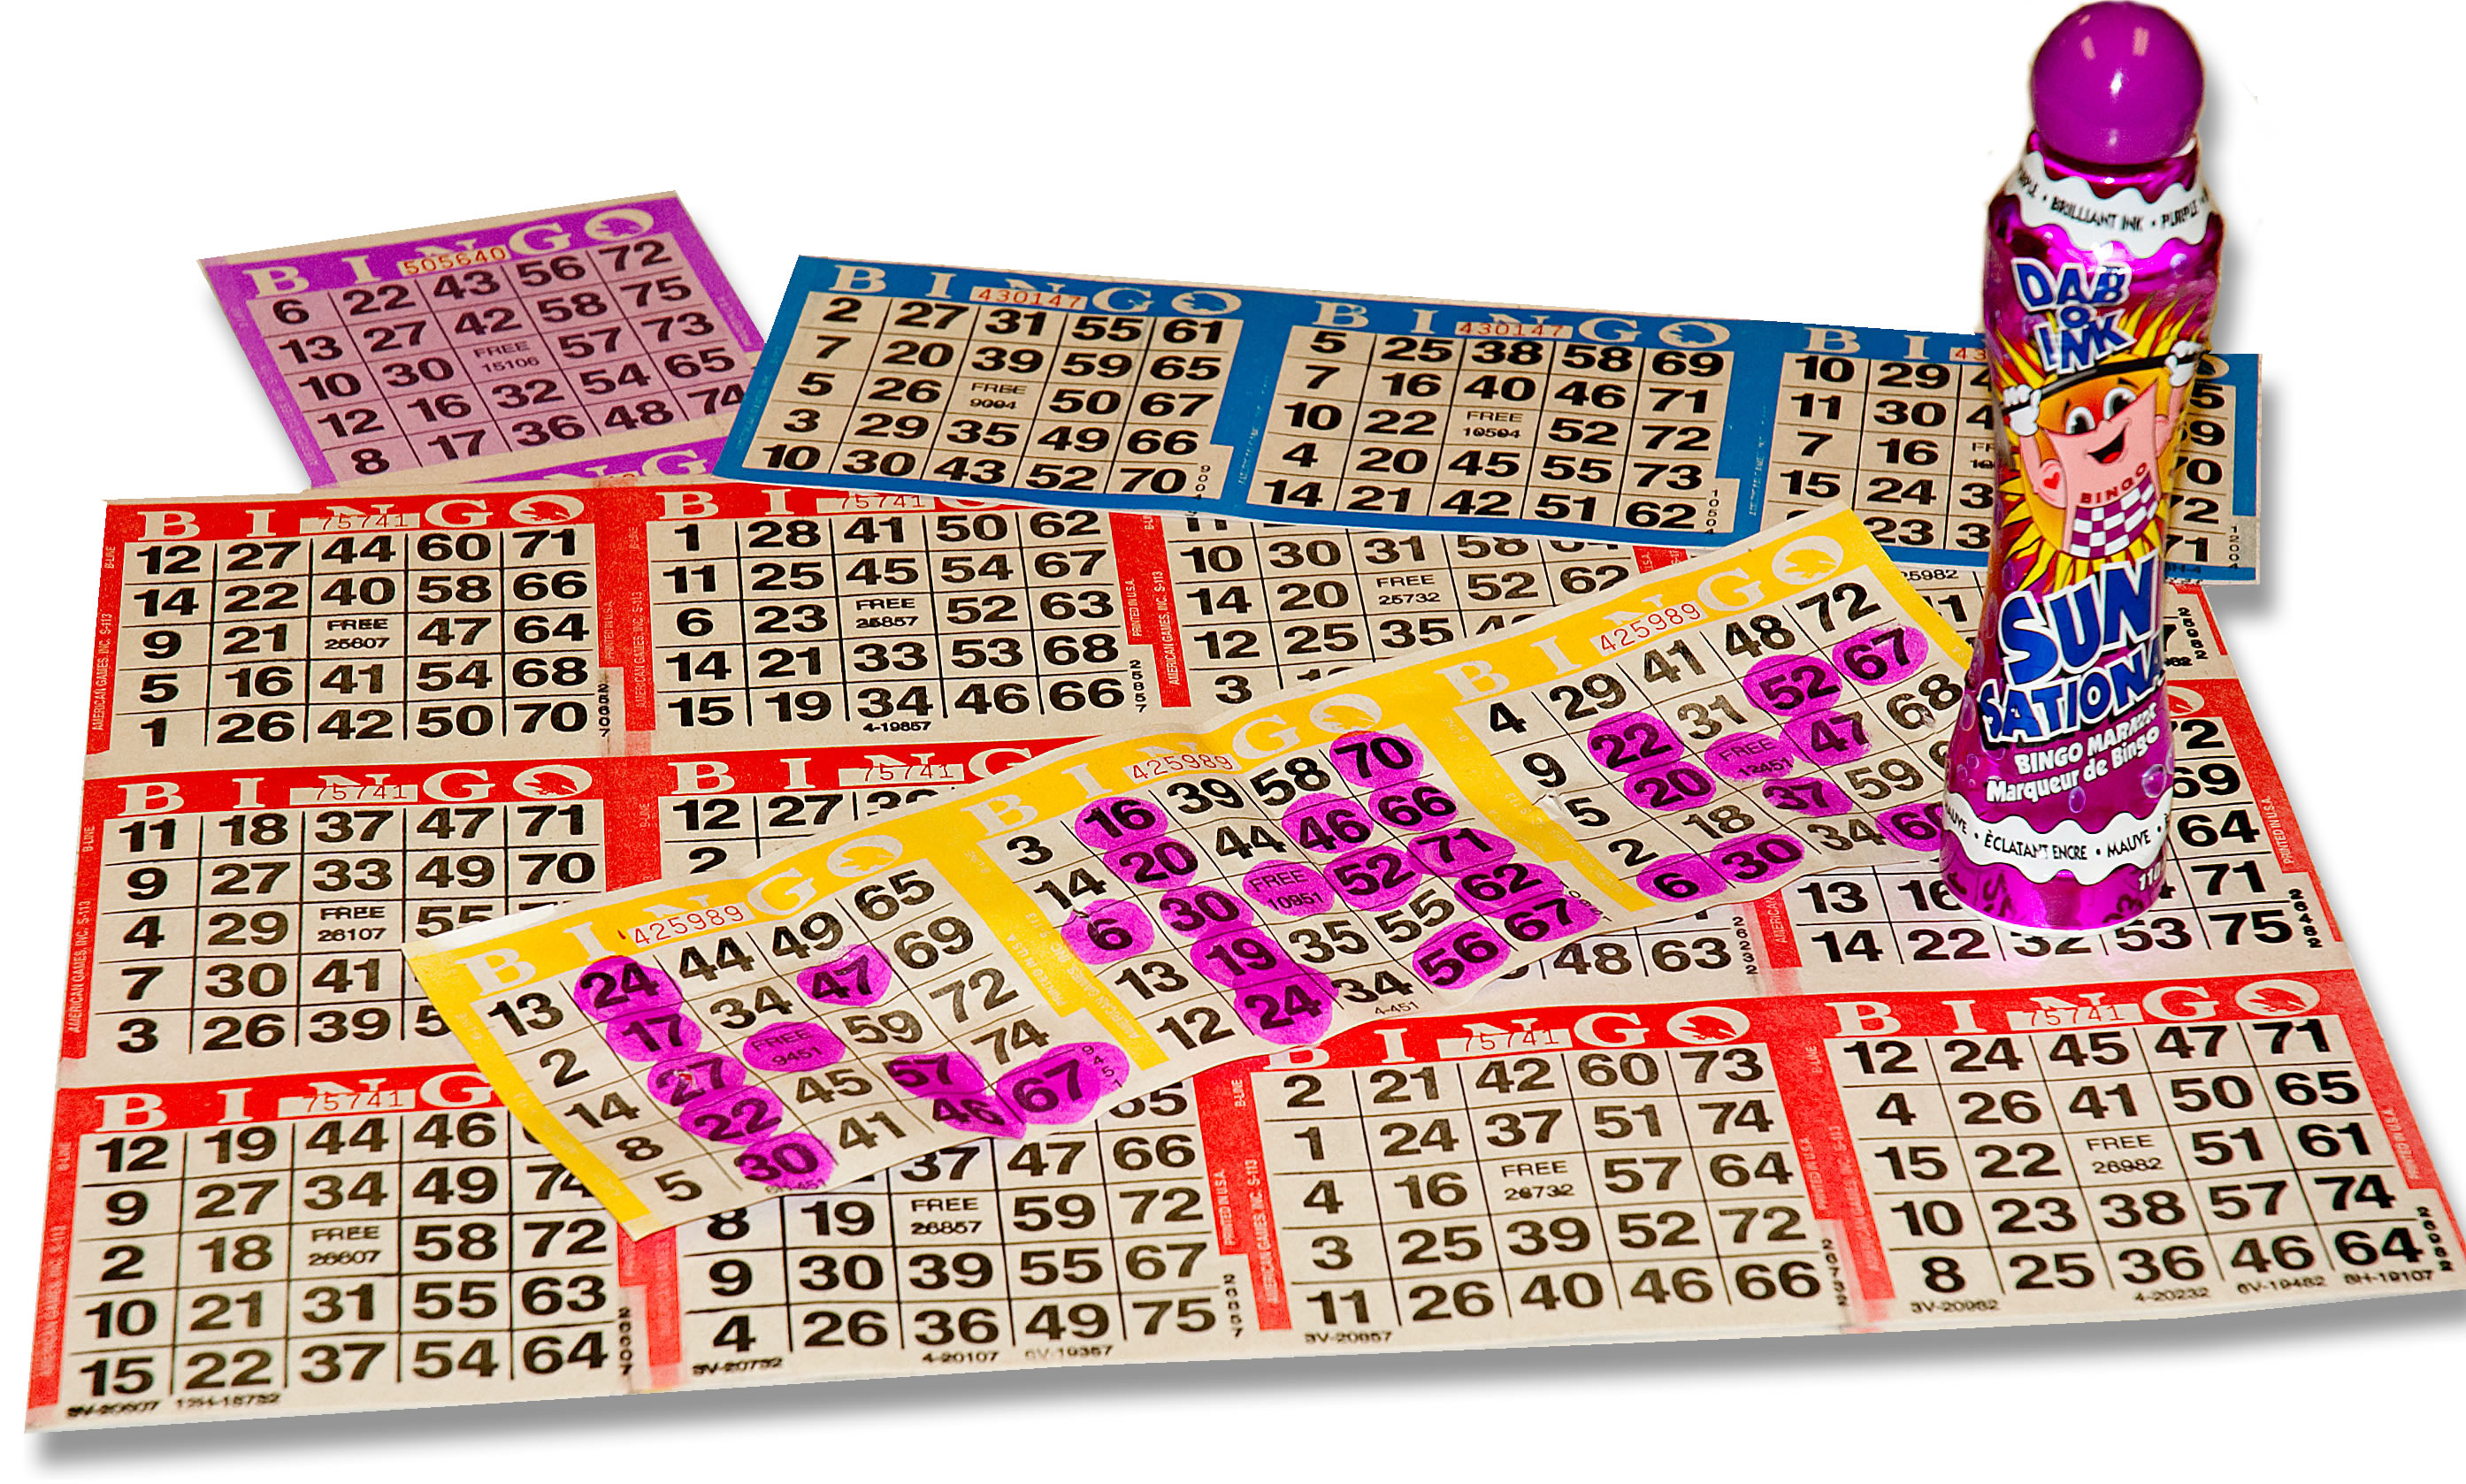 how to play bingo Rules and how to play bingo, number calling, and online bingo: bingo is played in halls bingo rules and payouts and play variations vary from place to place bingo brochures detailing particular games, rules and payouts are usually available at each respective location basically, players buy cards.